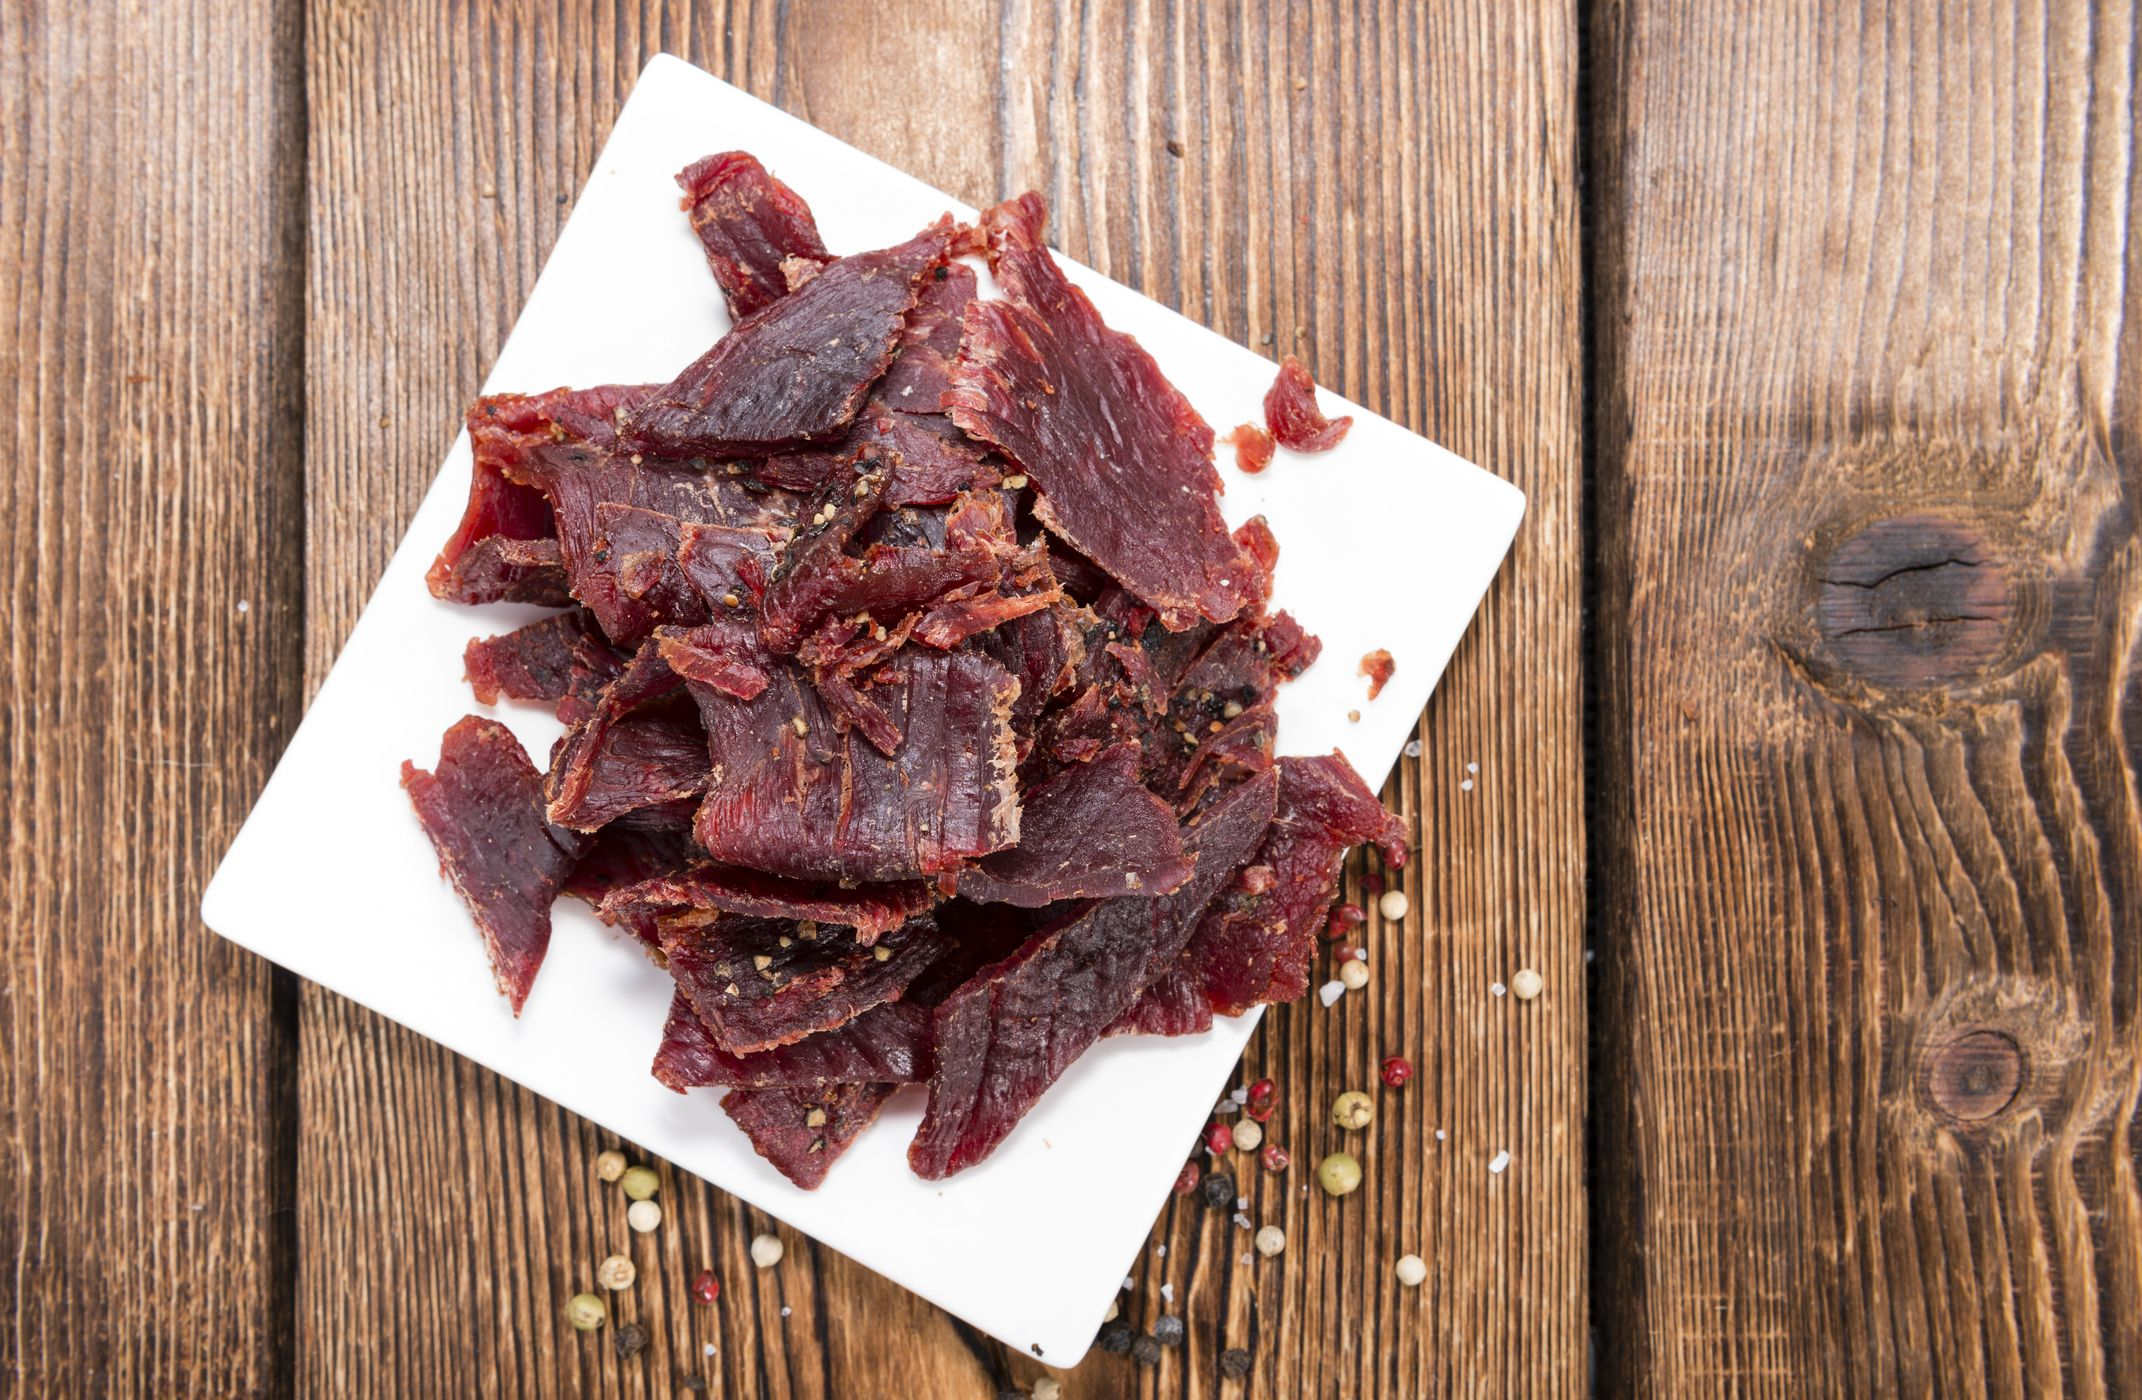 is beef jerky part of the paleo diet